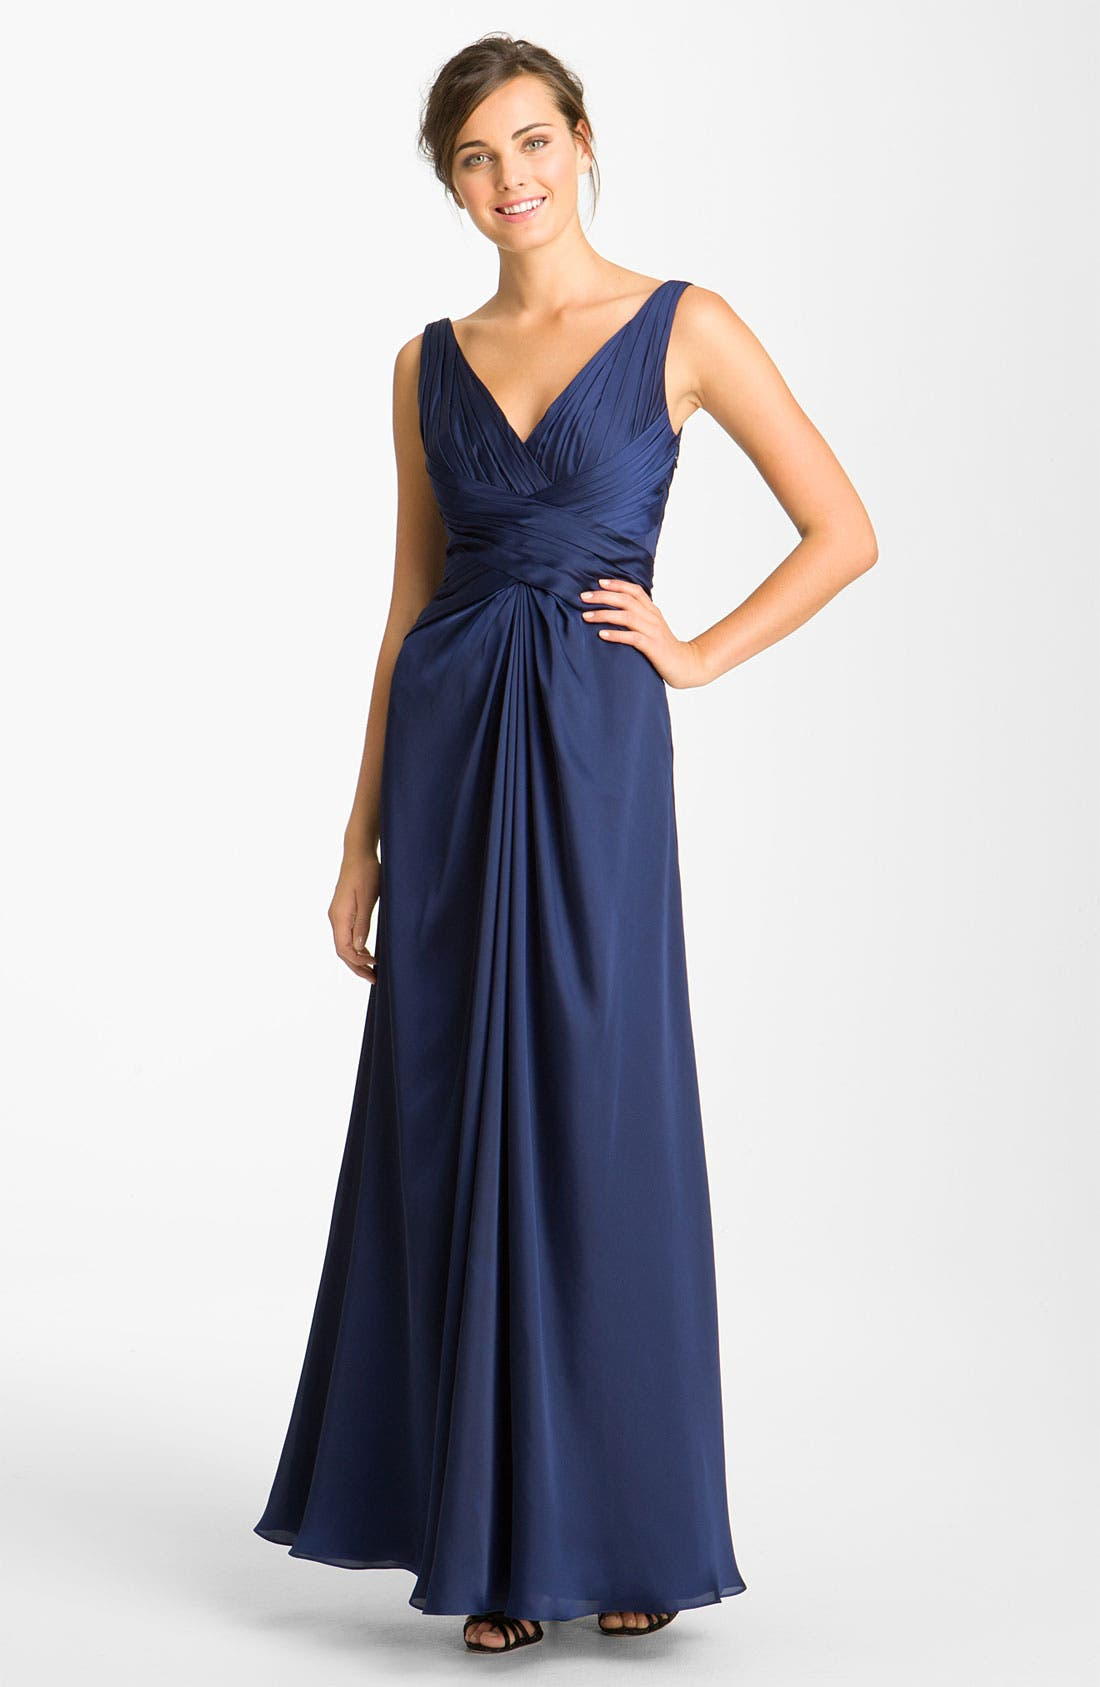 Alternate Image 1 Selected - ML Monique Lhuillier Bridesmaids V-Neck Charmeuse Gown (Nordstrom Exclusive)